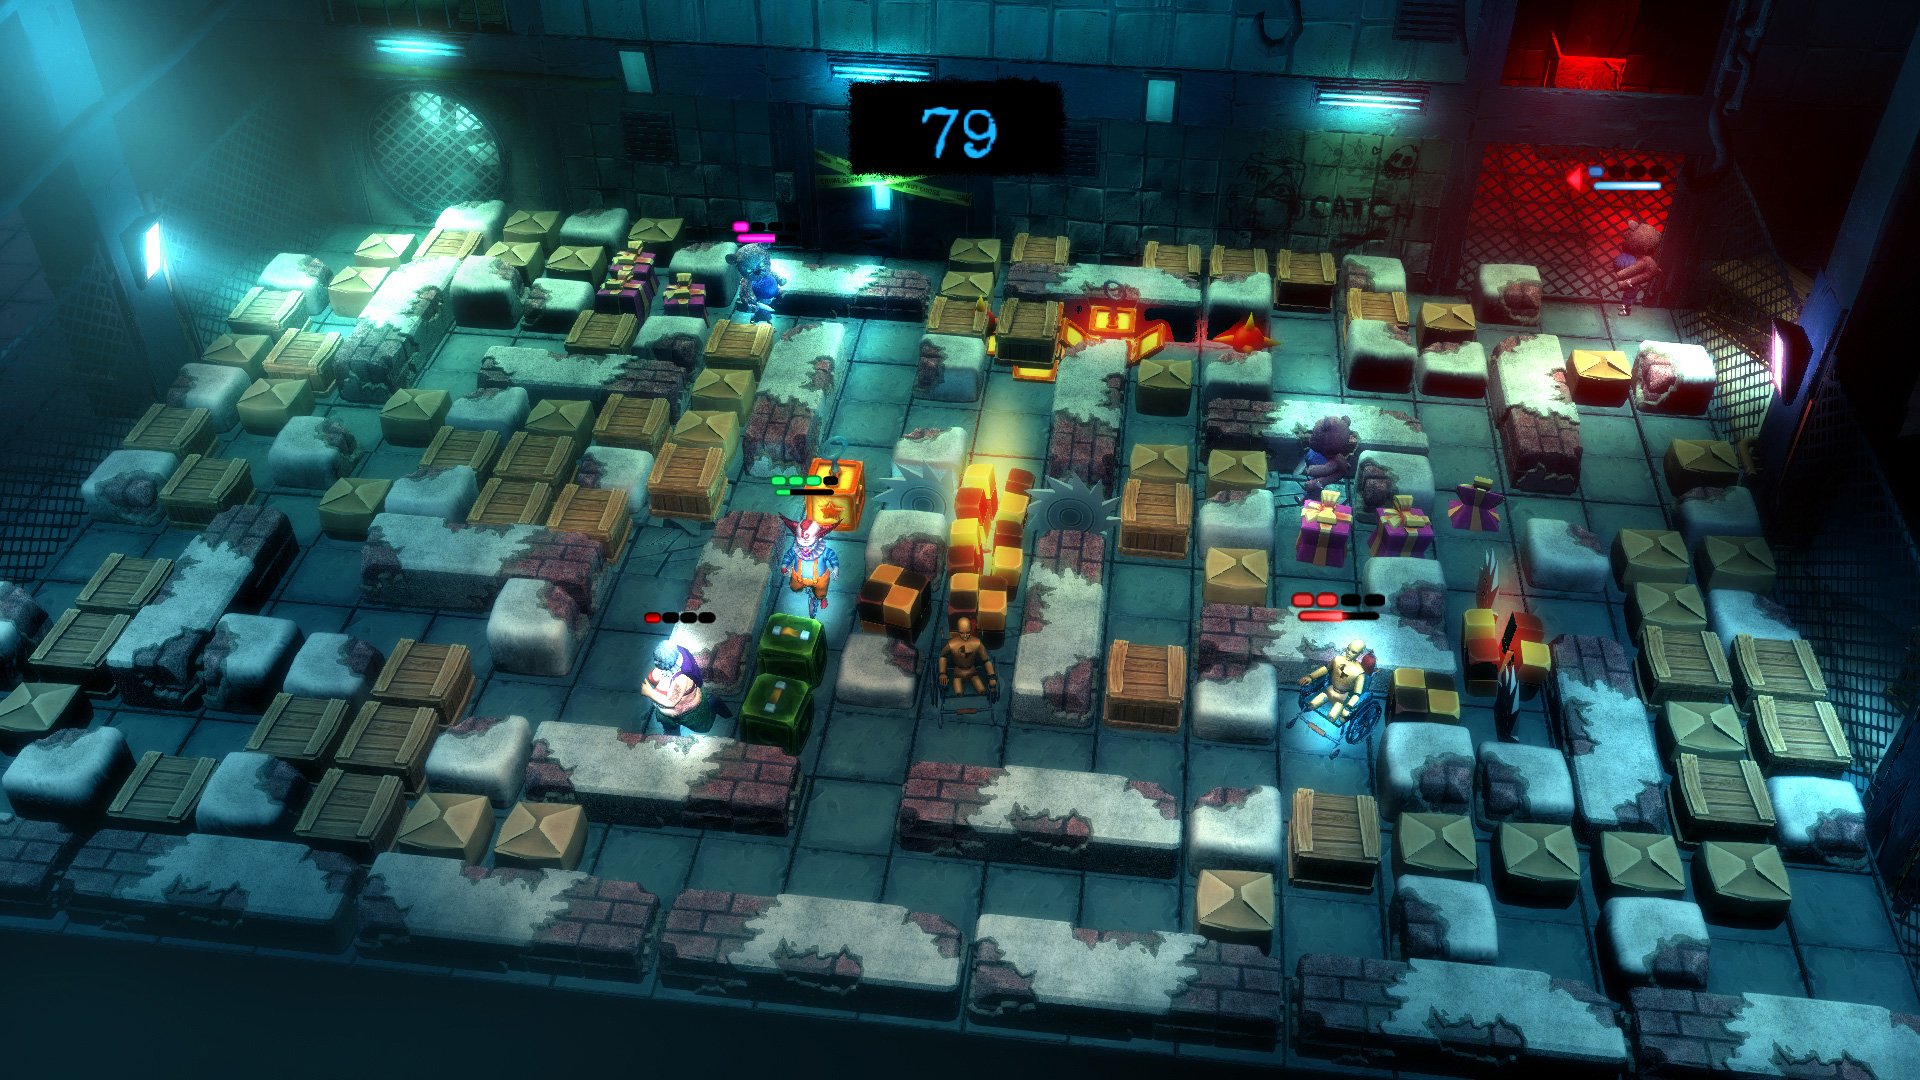 Basement Crawl Ps4 Gets First Screens Showing Multiplayer